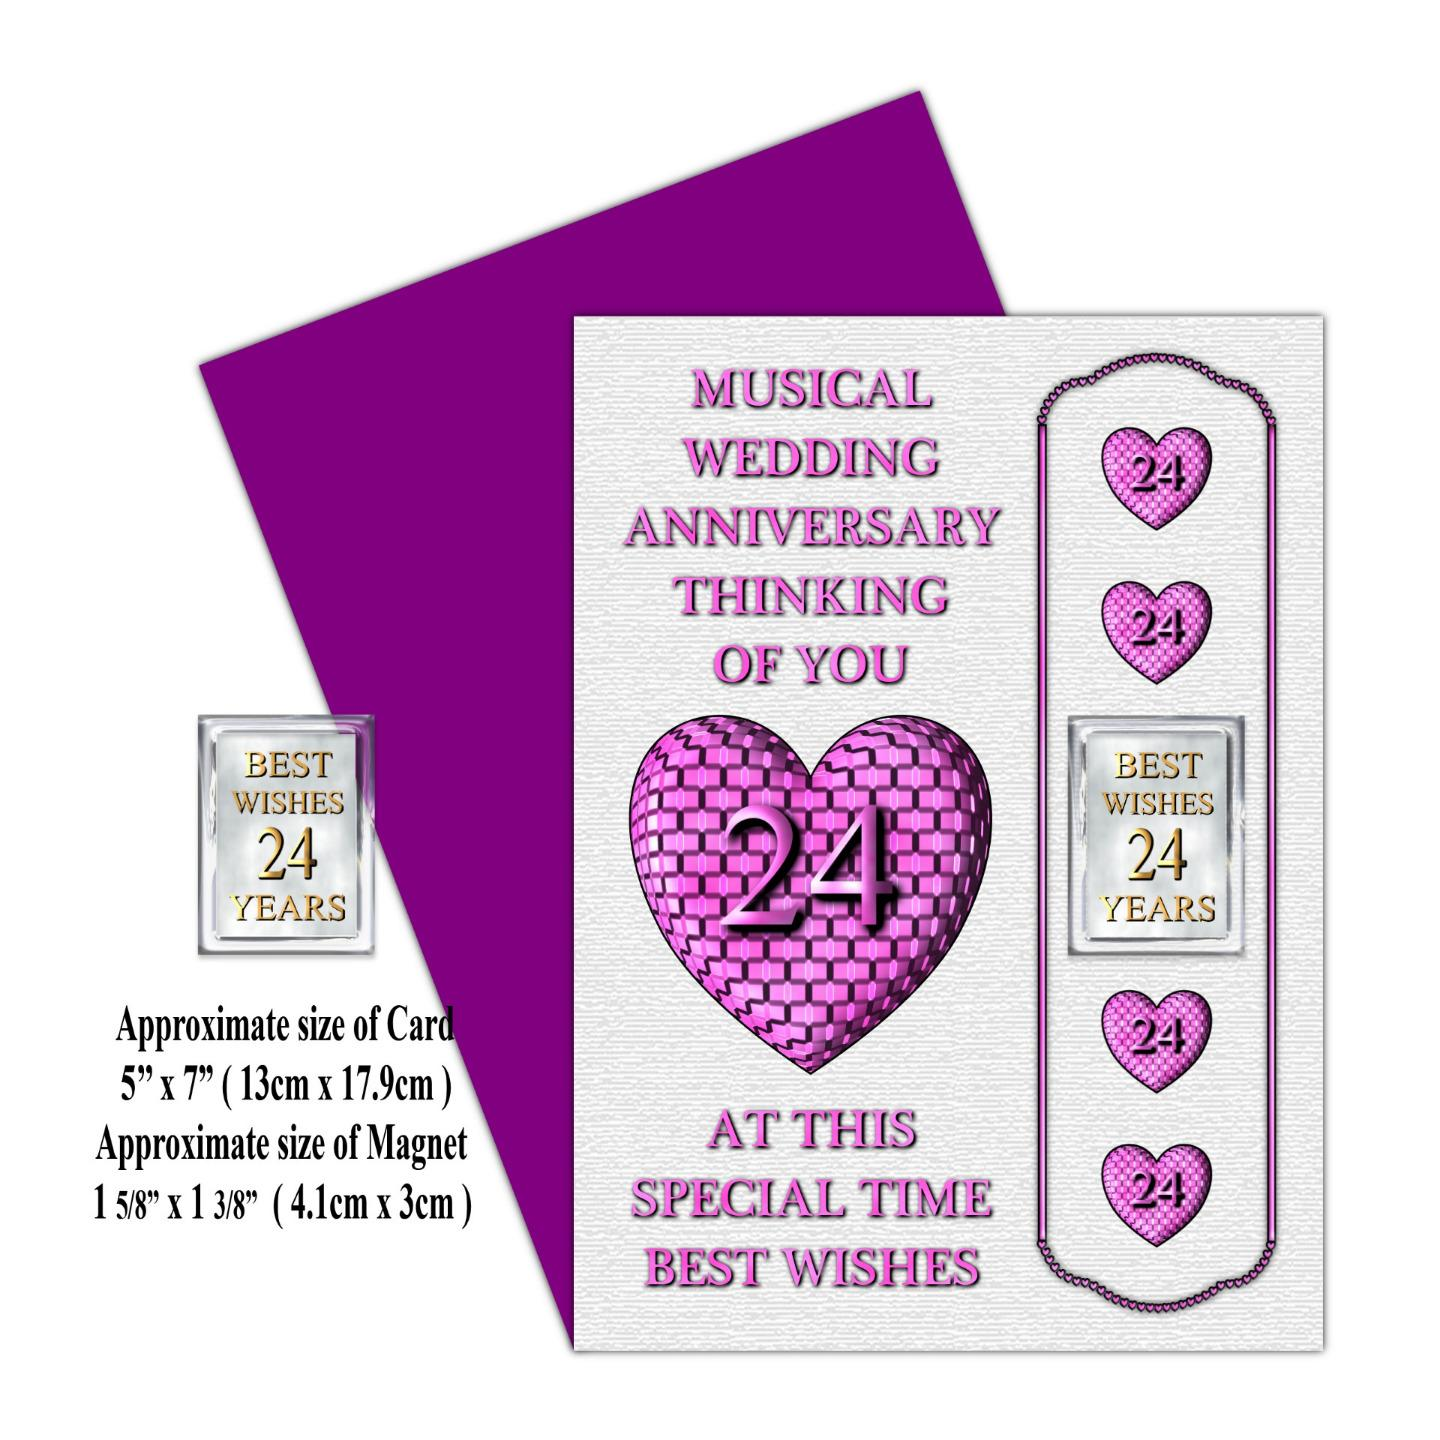 1ST-TO-24TH-WEDDING-ANNIVERSARY-CARD-MAGNET-GIFT-FOR-FAMILY-FRIENDS